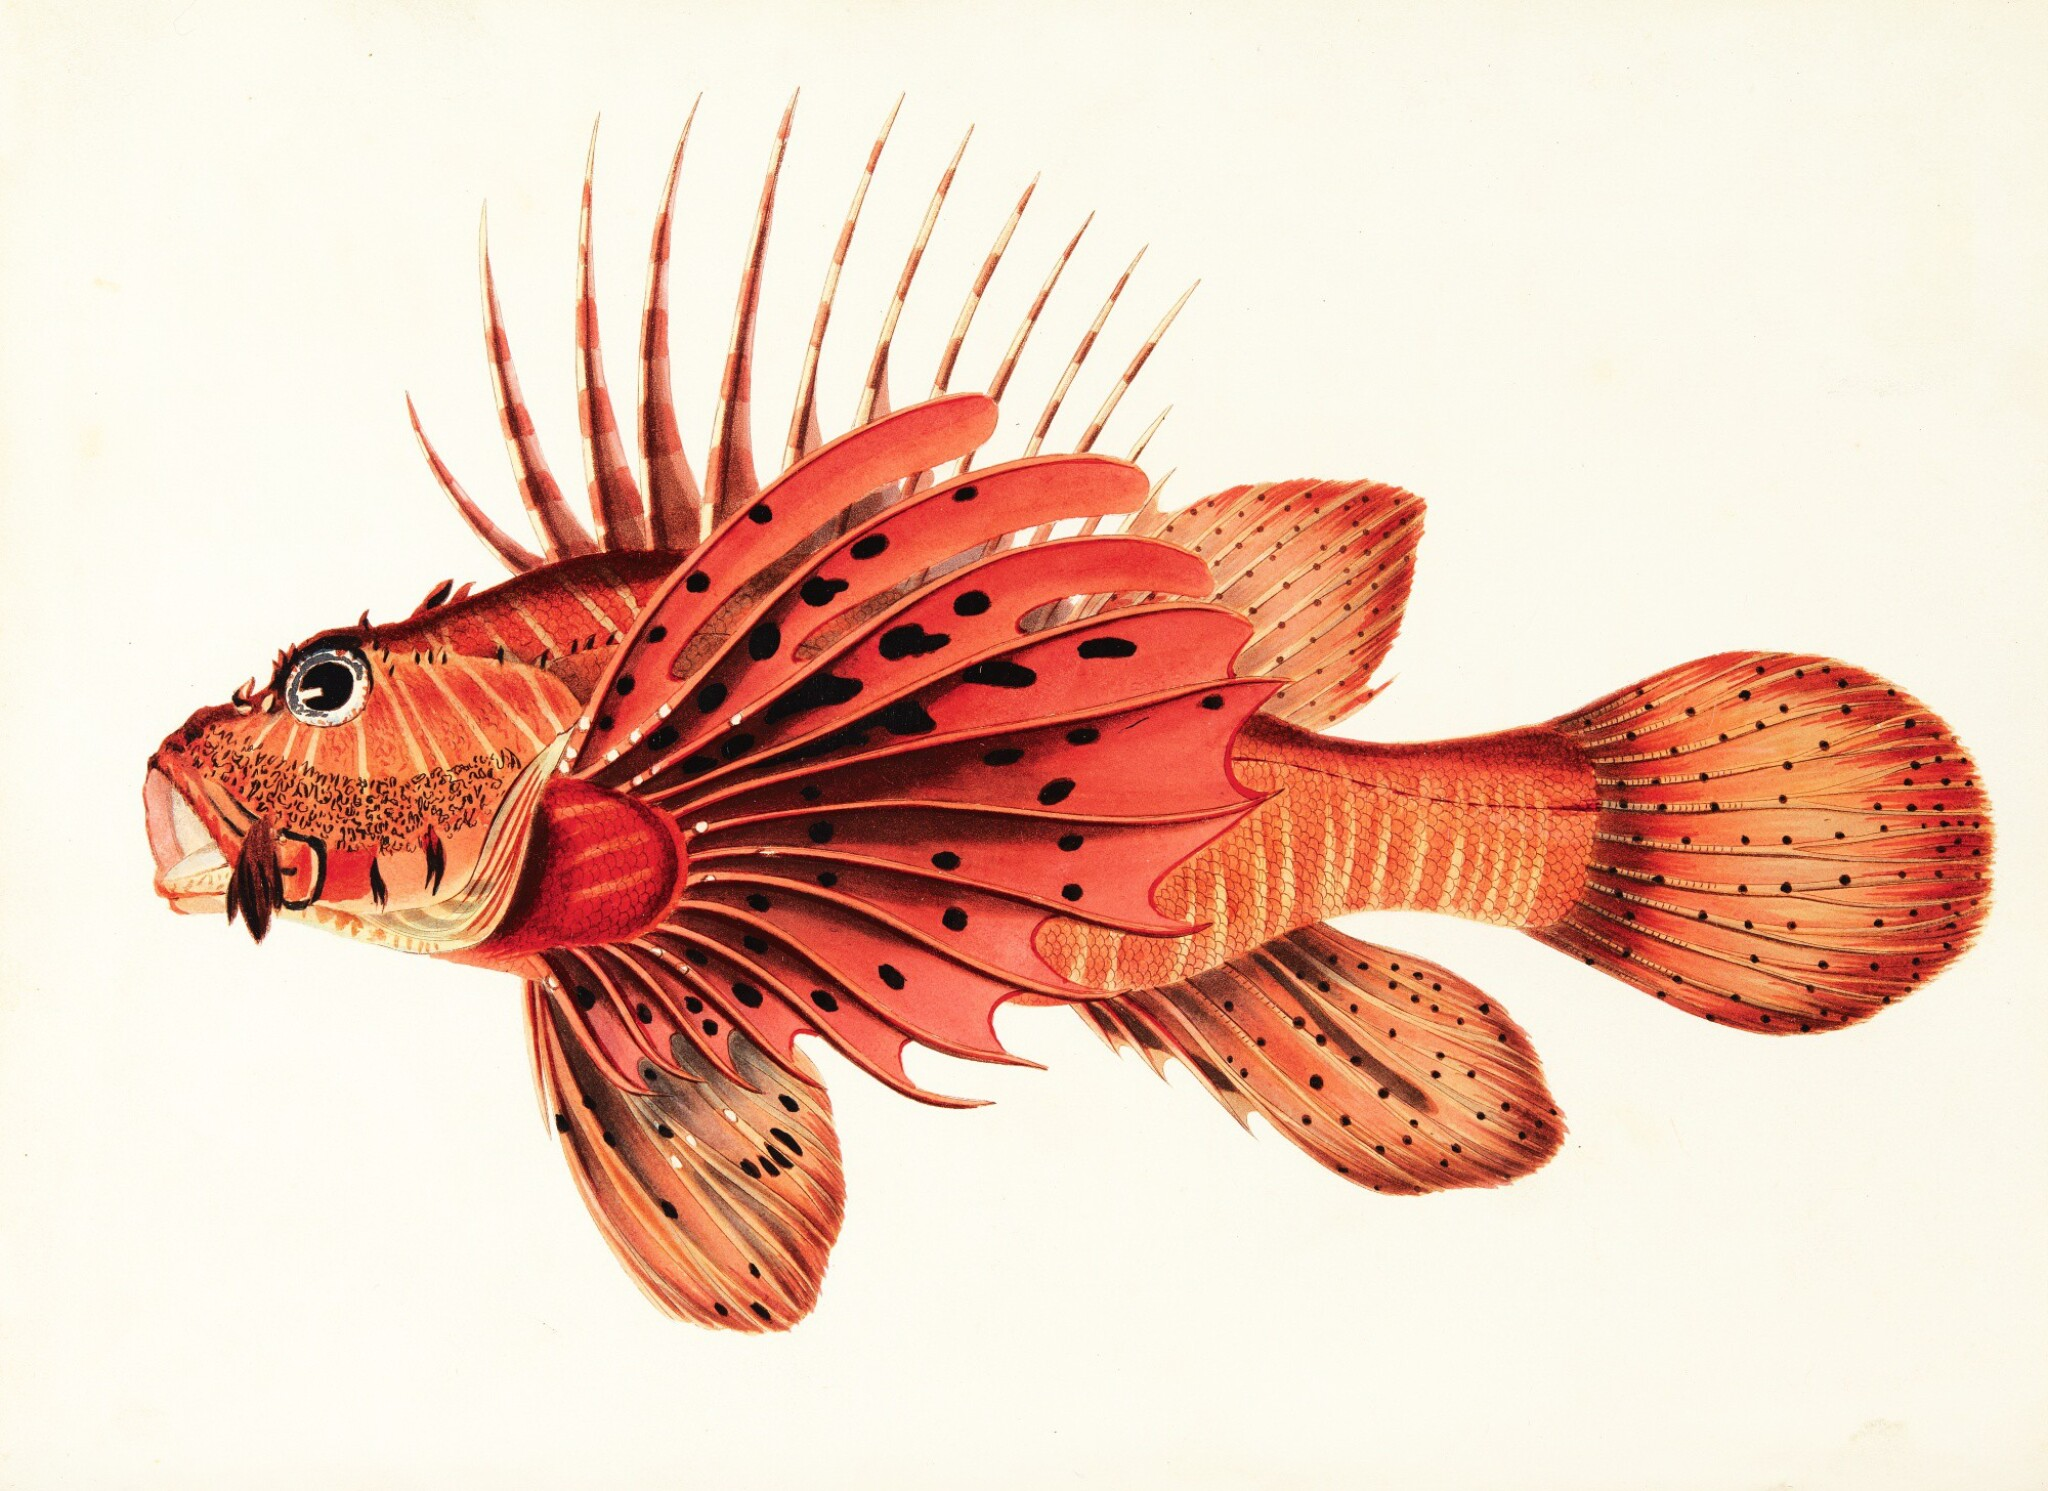 View 1 of Lot 296. Bennett | Fishes found on the Coast of Ceylon, 1830.